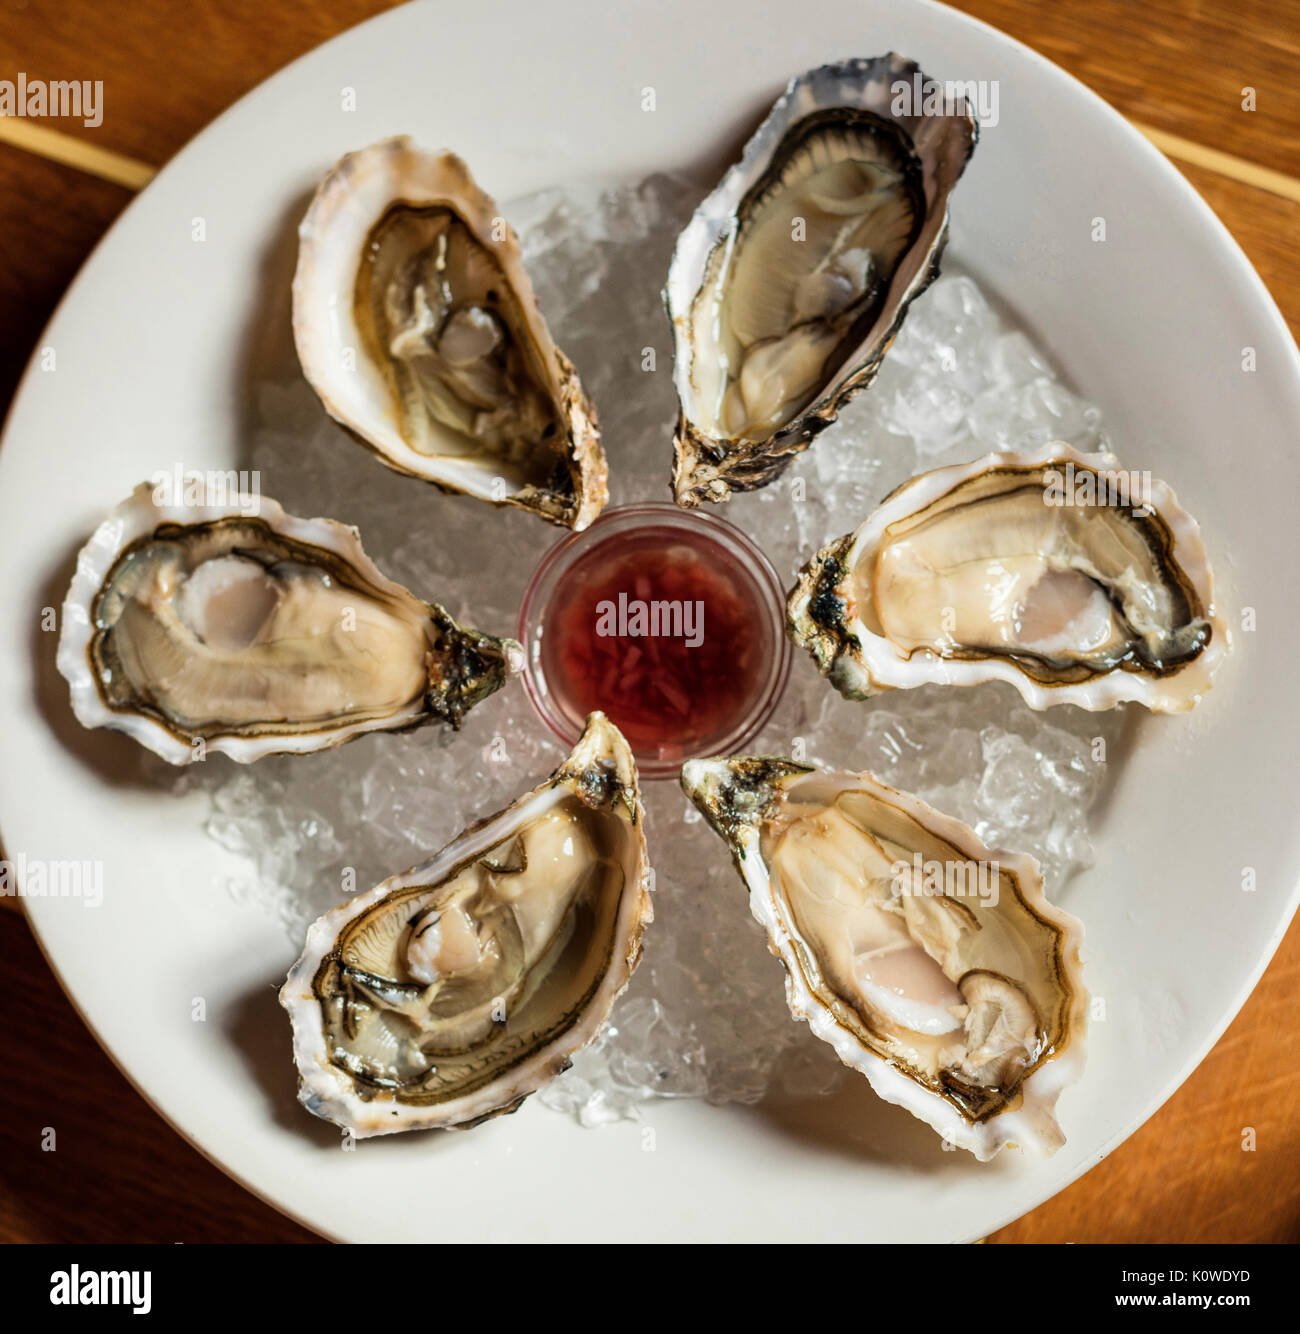 Oysters on the plate - Stock Image